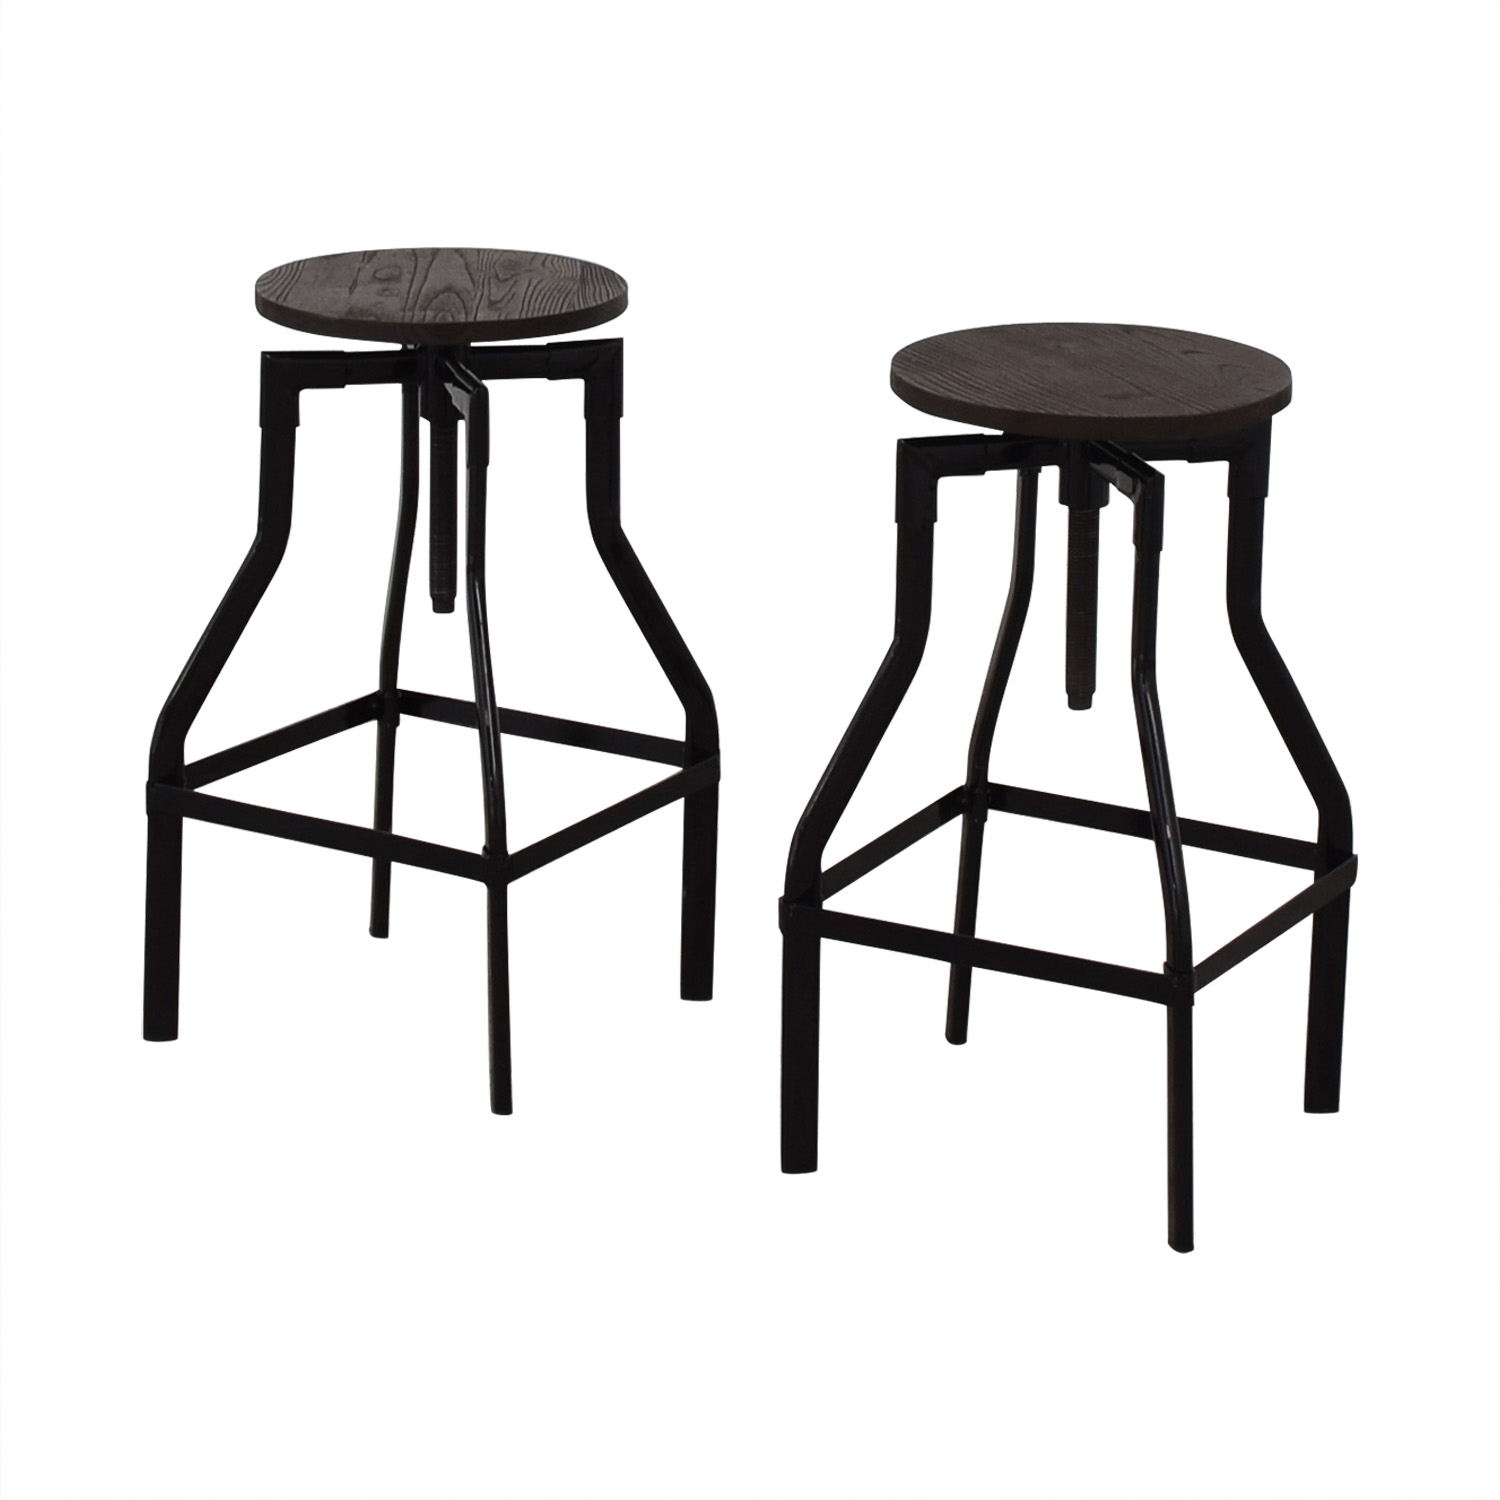 Industrial Wood Stools / Stools